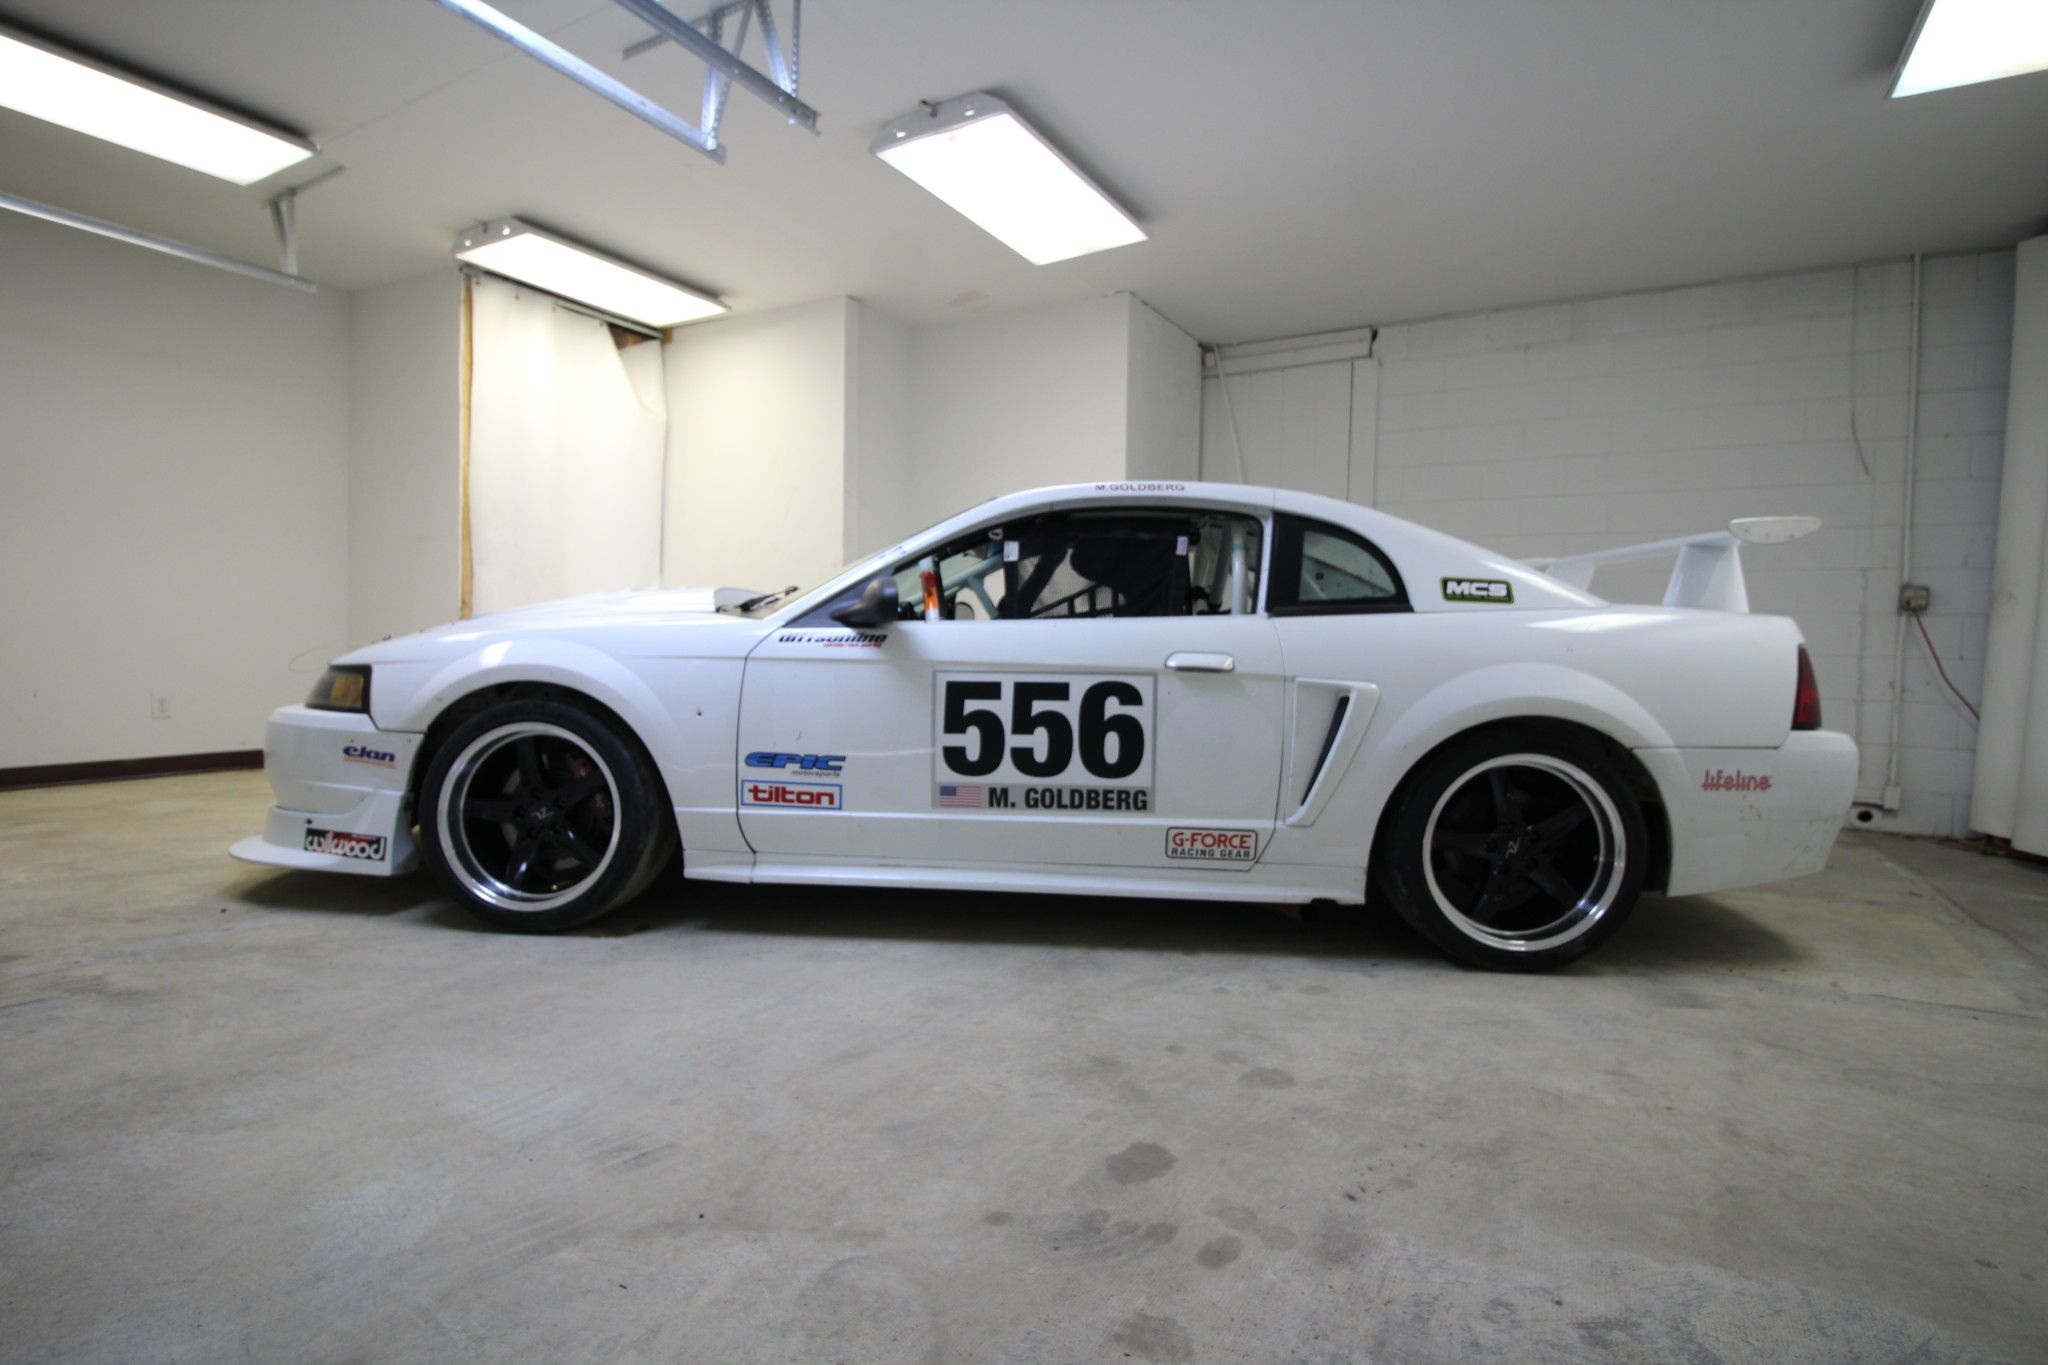 1999 Ford Mustang Gt Race Car Ford Mustang Gt Ford Mustang Mustang Gt